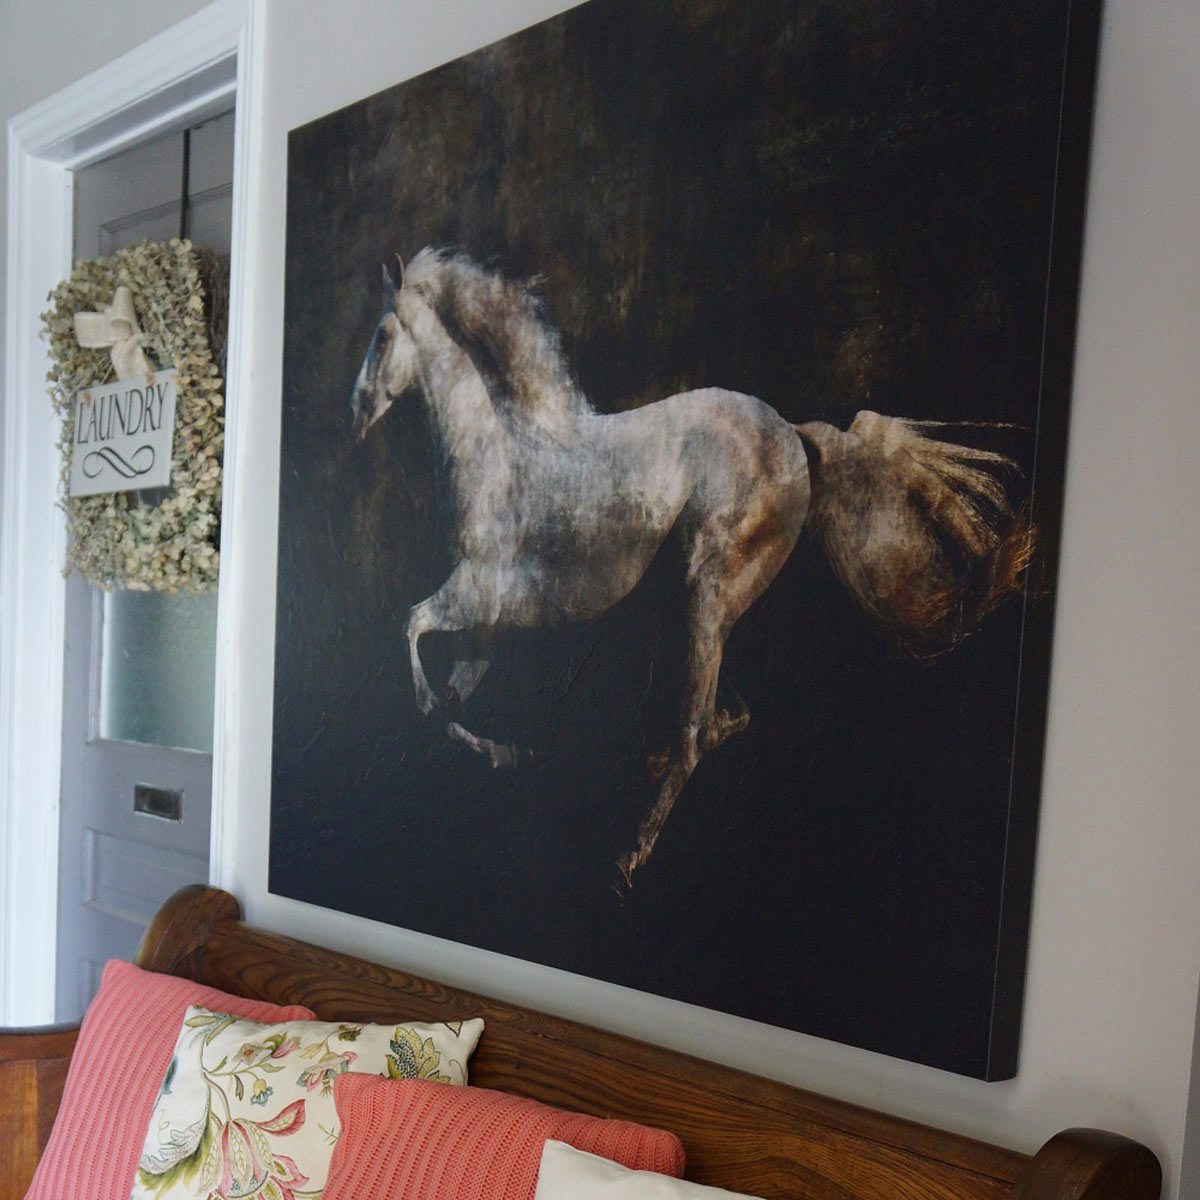 Farmhouse Look: Statement Art